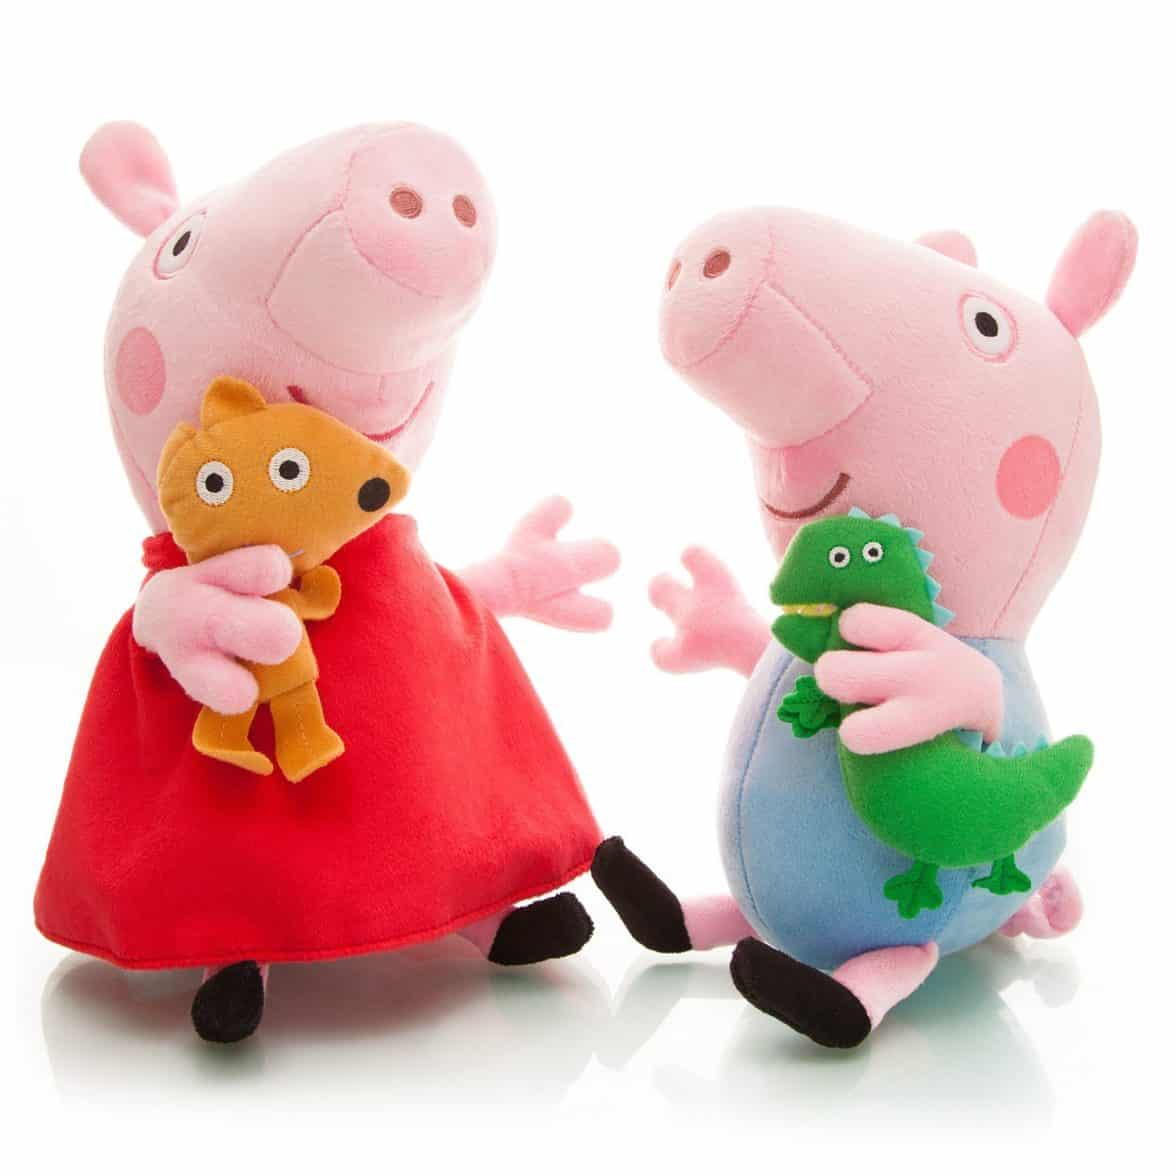 Peppa Pig Plush Toy Peppa & George 2pcs 11-13 Large Size